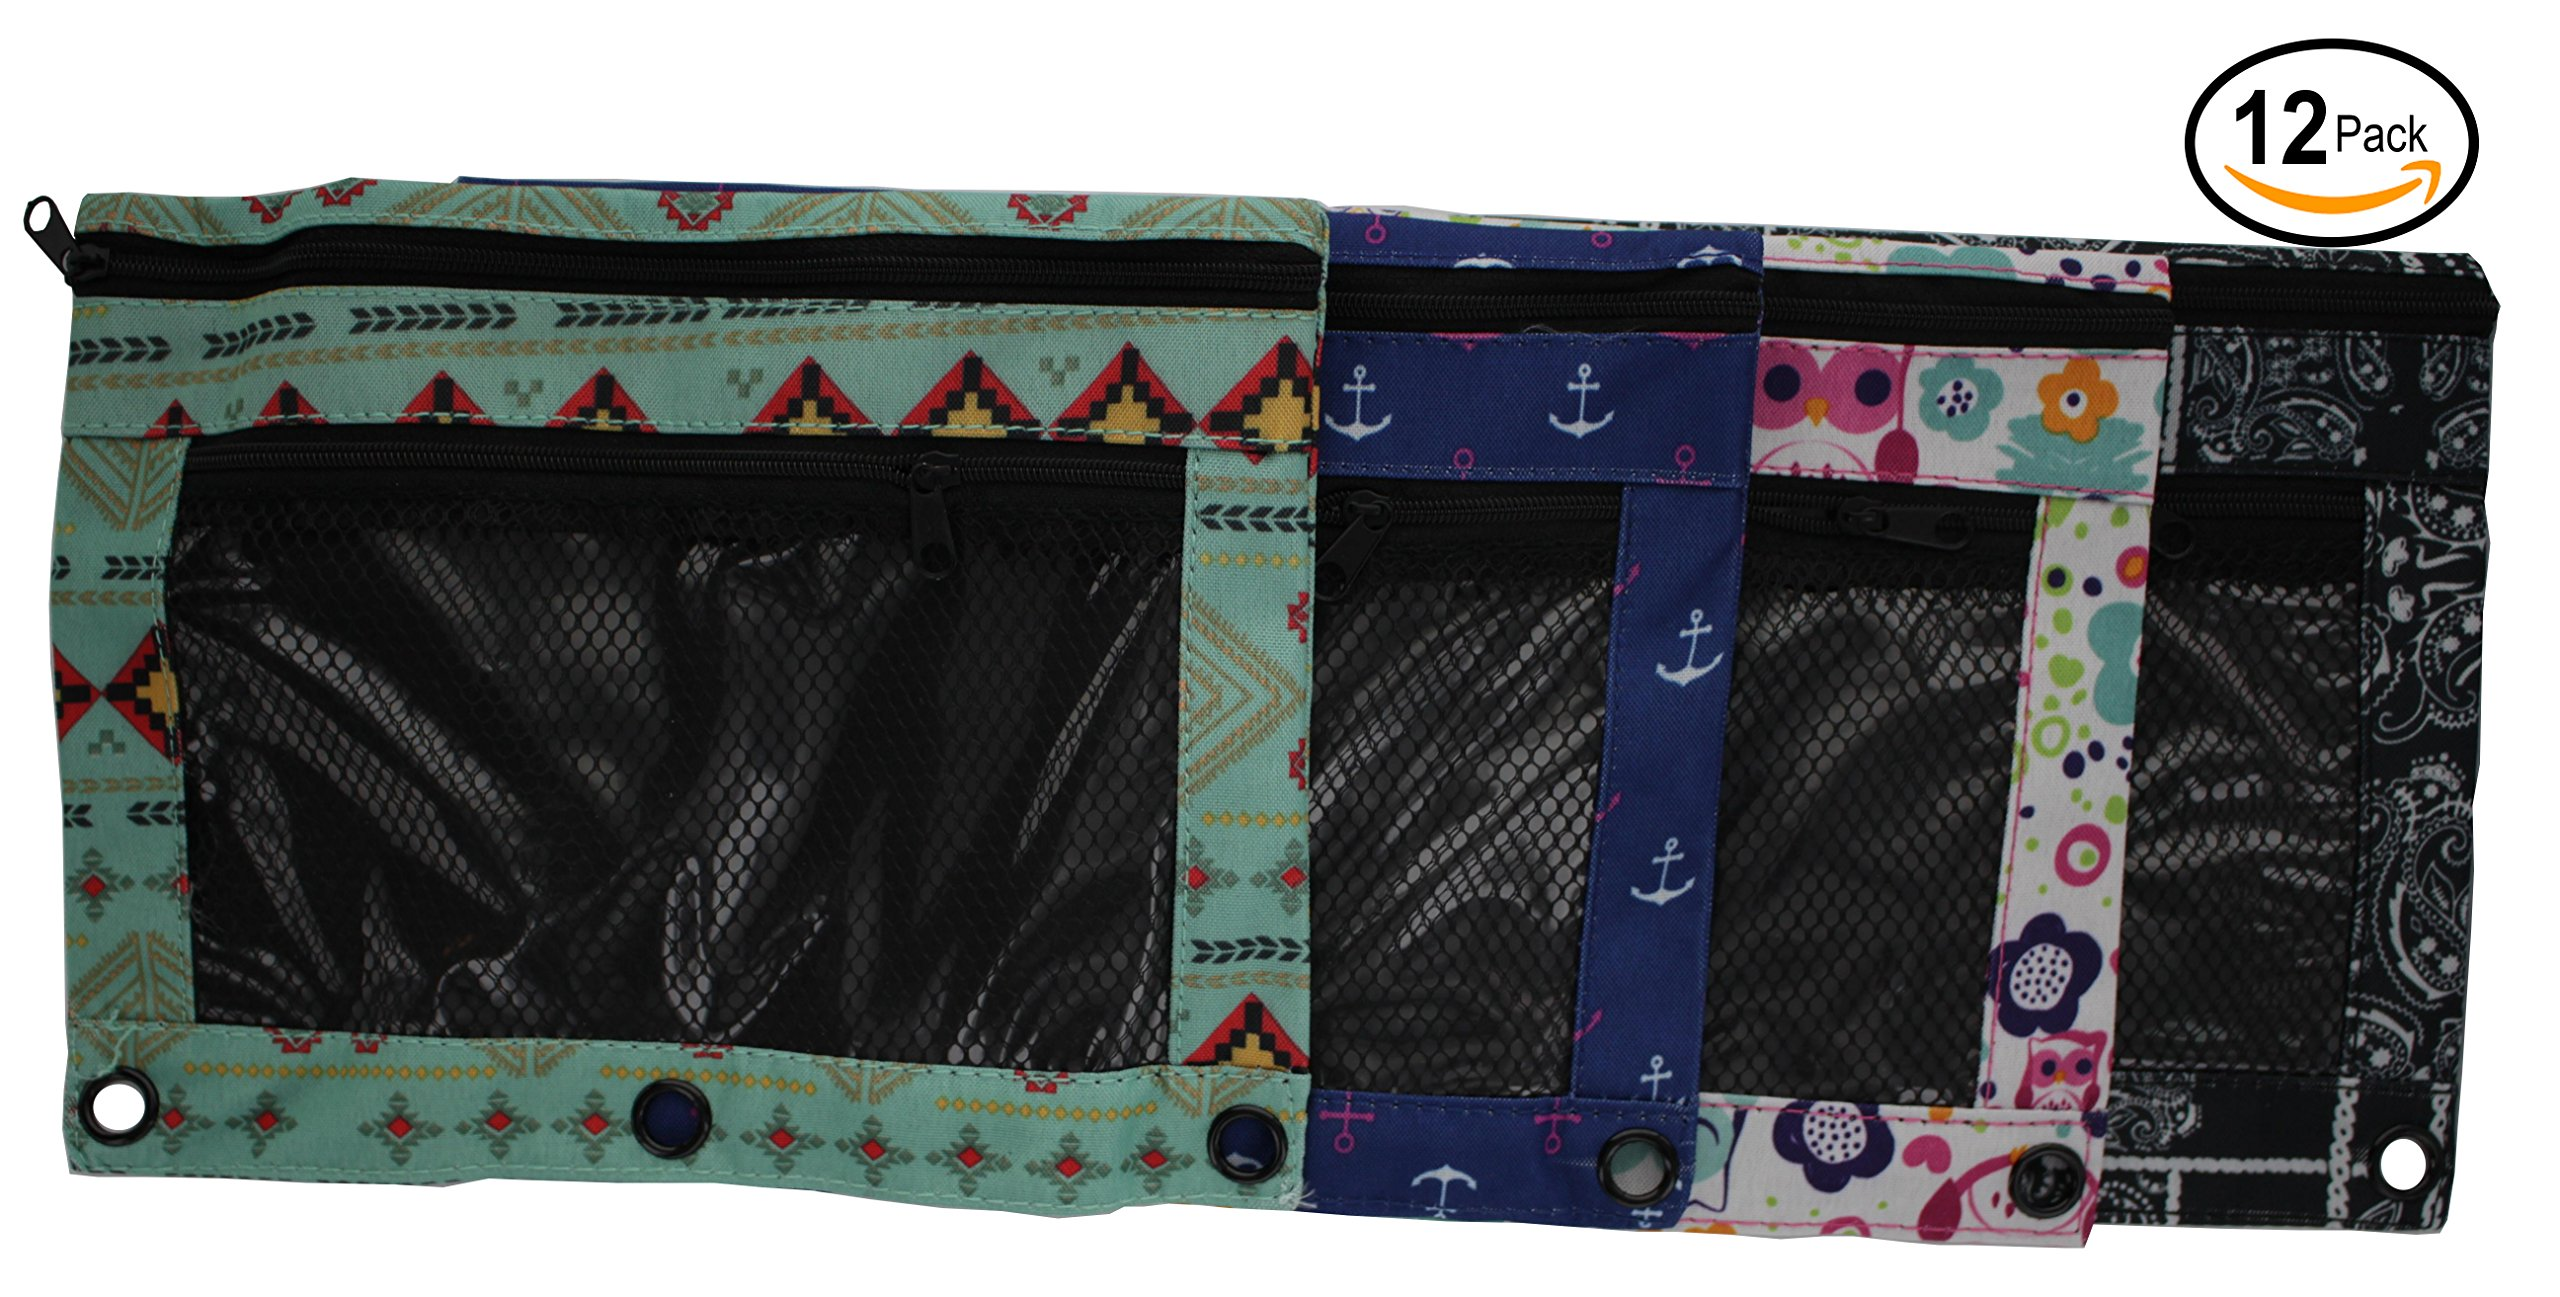 Emraw 4-Pack Double Pocket Zippered Trendsetters Pencil Pouches with 3-Ring Grommet Holes & Quick View Mesh Pocket - Includes 4 Different Styles